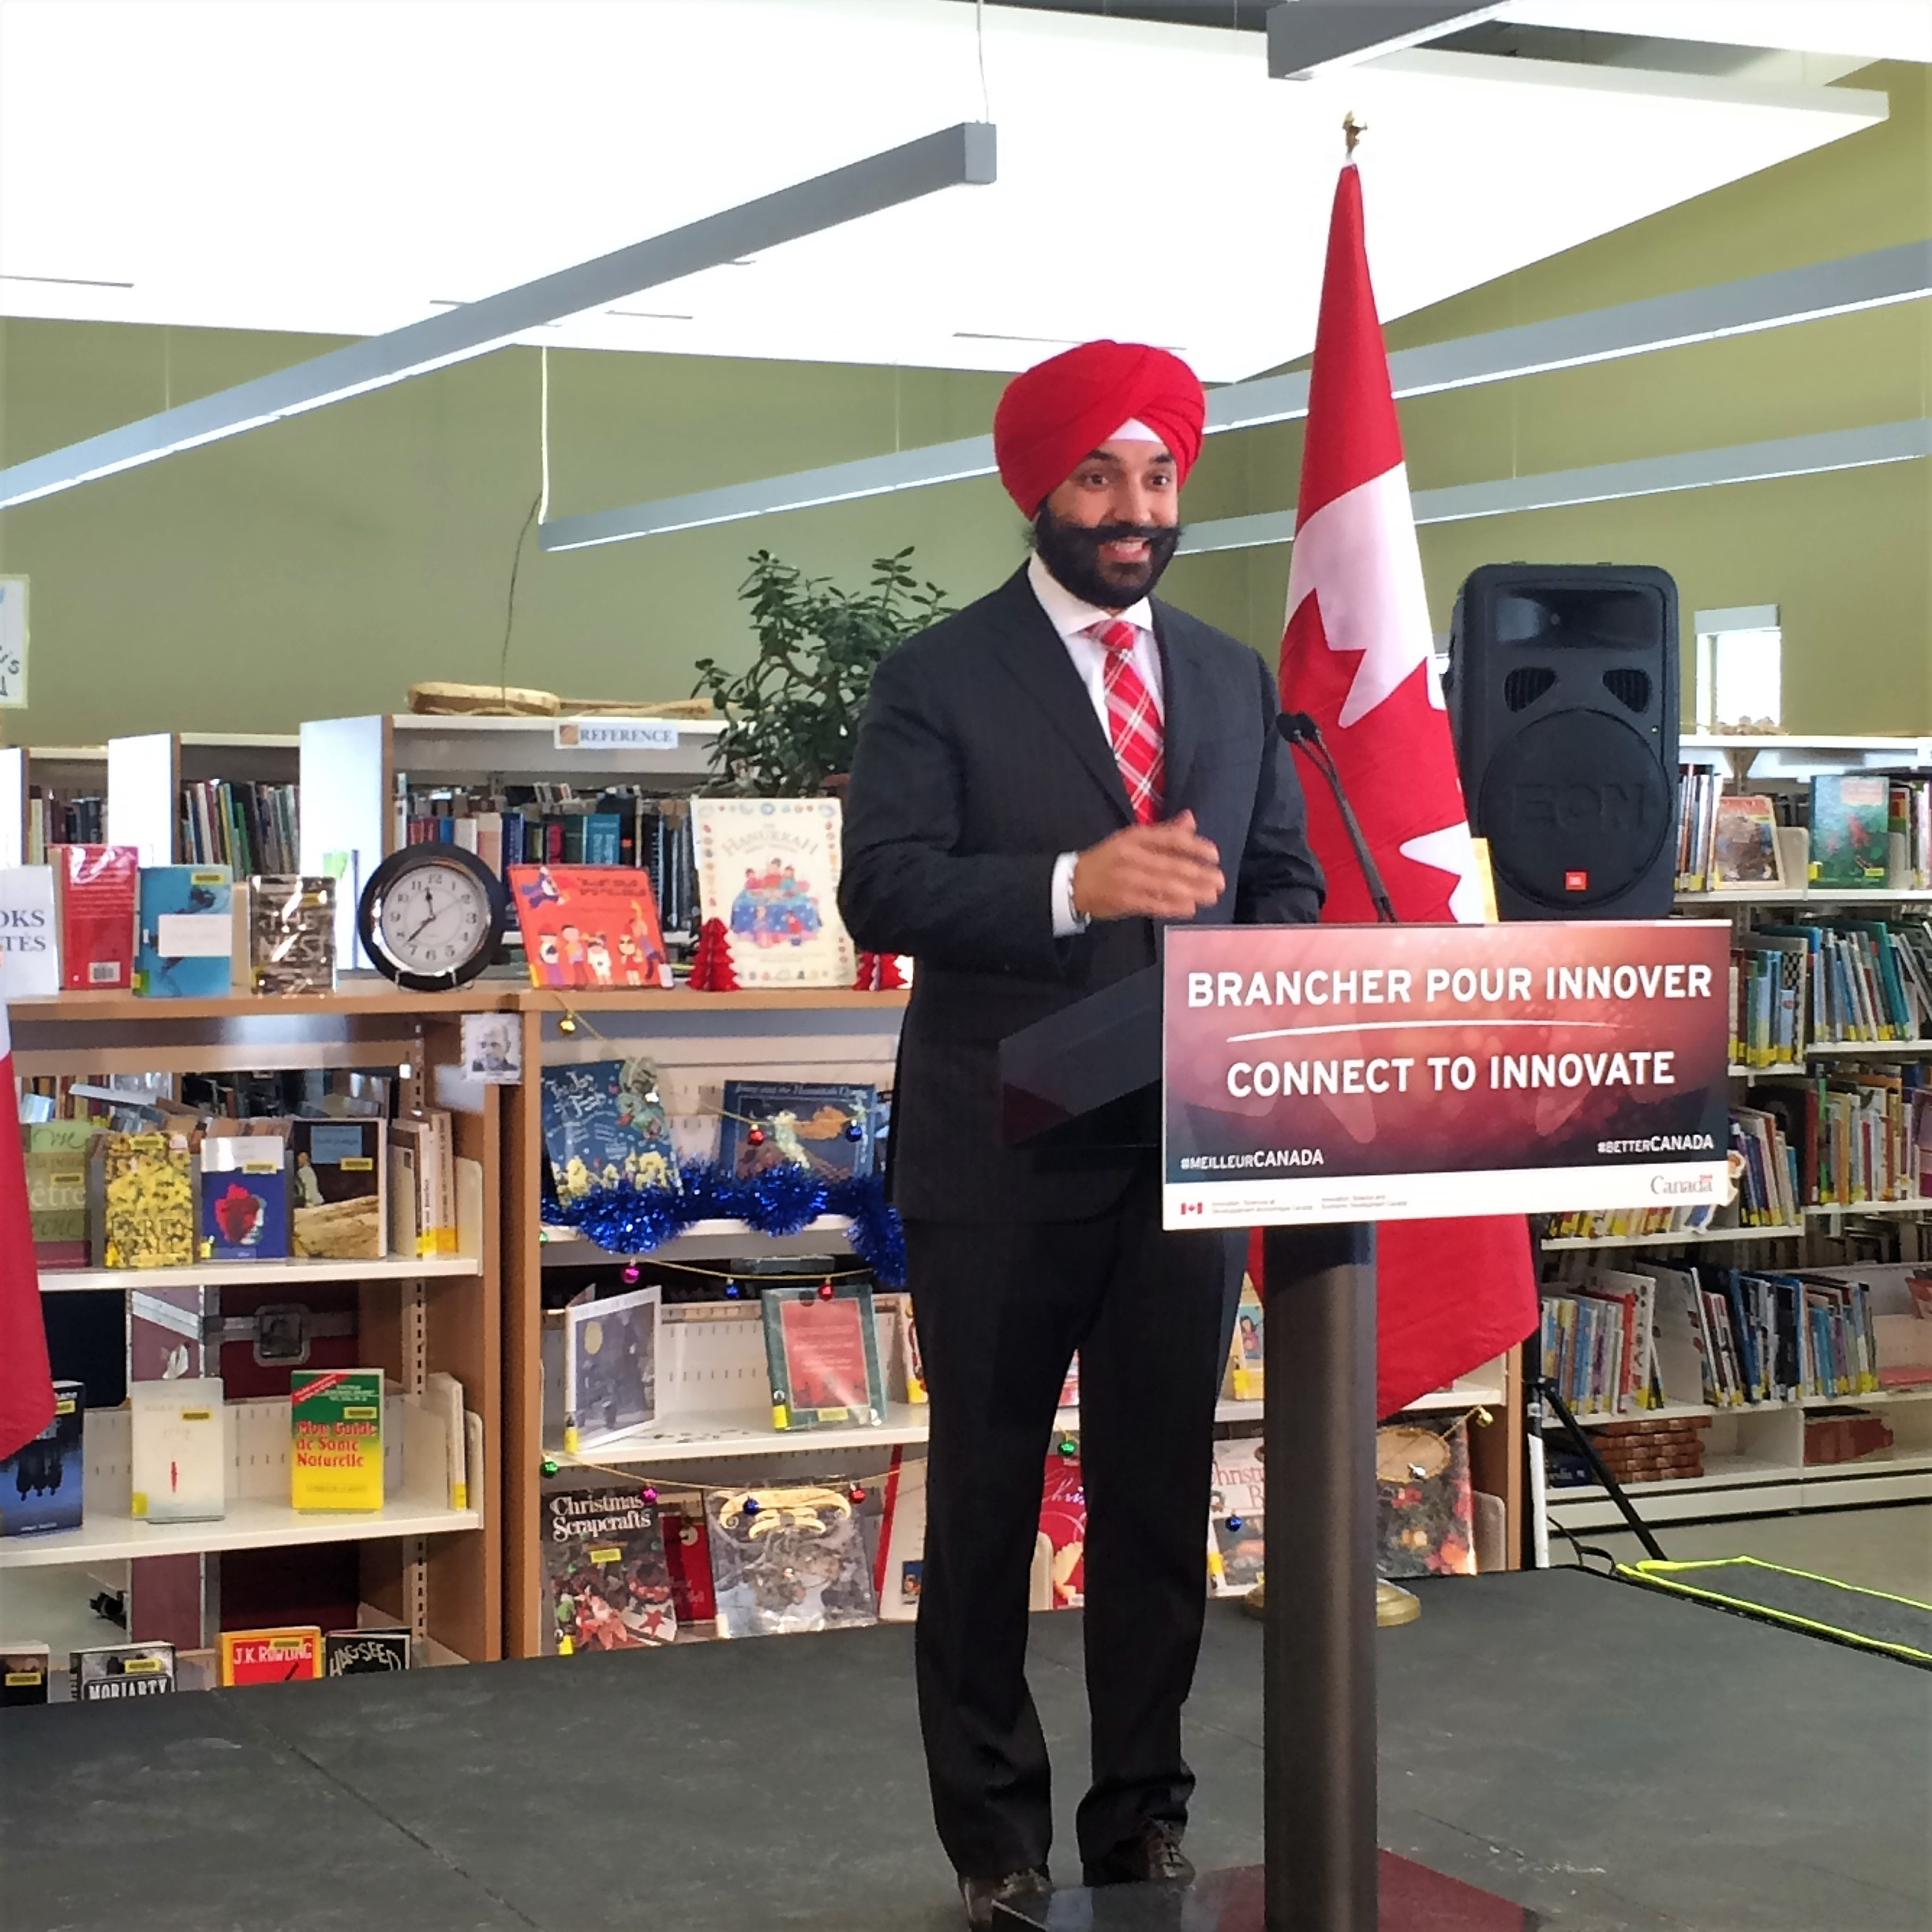 Minister Bains speaking at the press conference in Wakefield today. Photo by Sara Cimetta